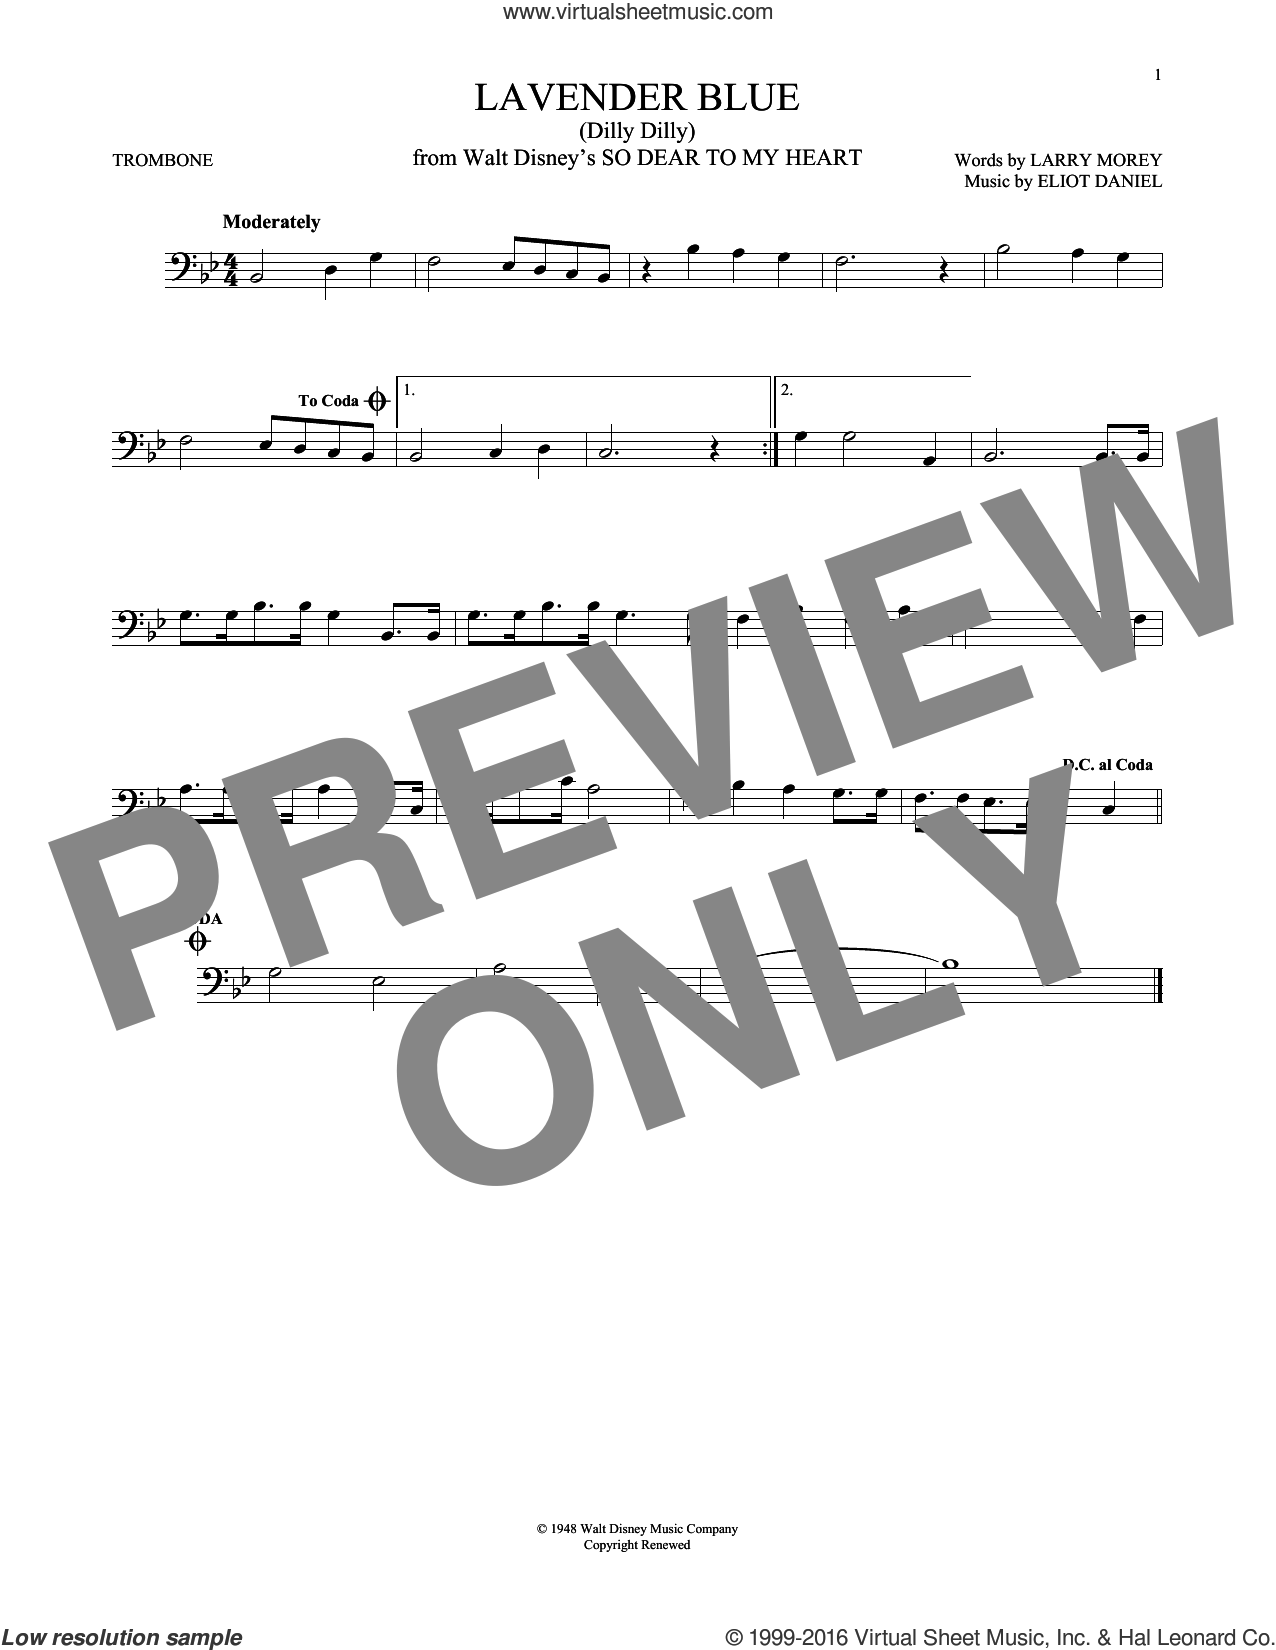 Lavender Blue (Dilly Dilly) sheet music for trombone solo by Sammy Turner, Eliot Daniel and Larry Morey, intermediate skill level